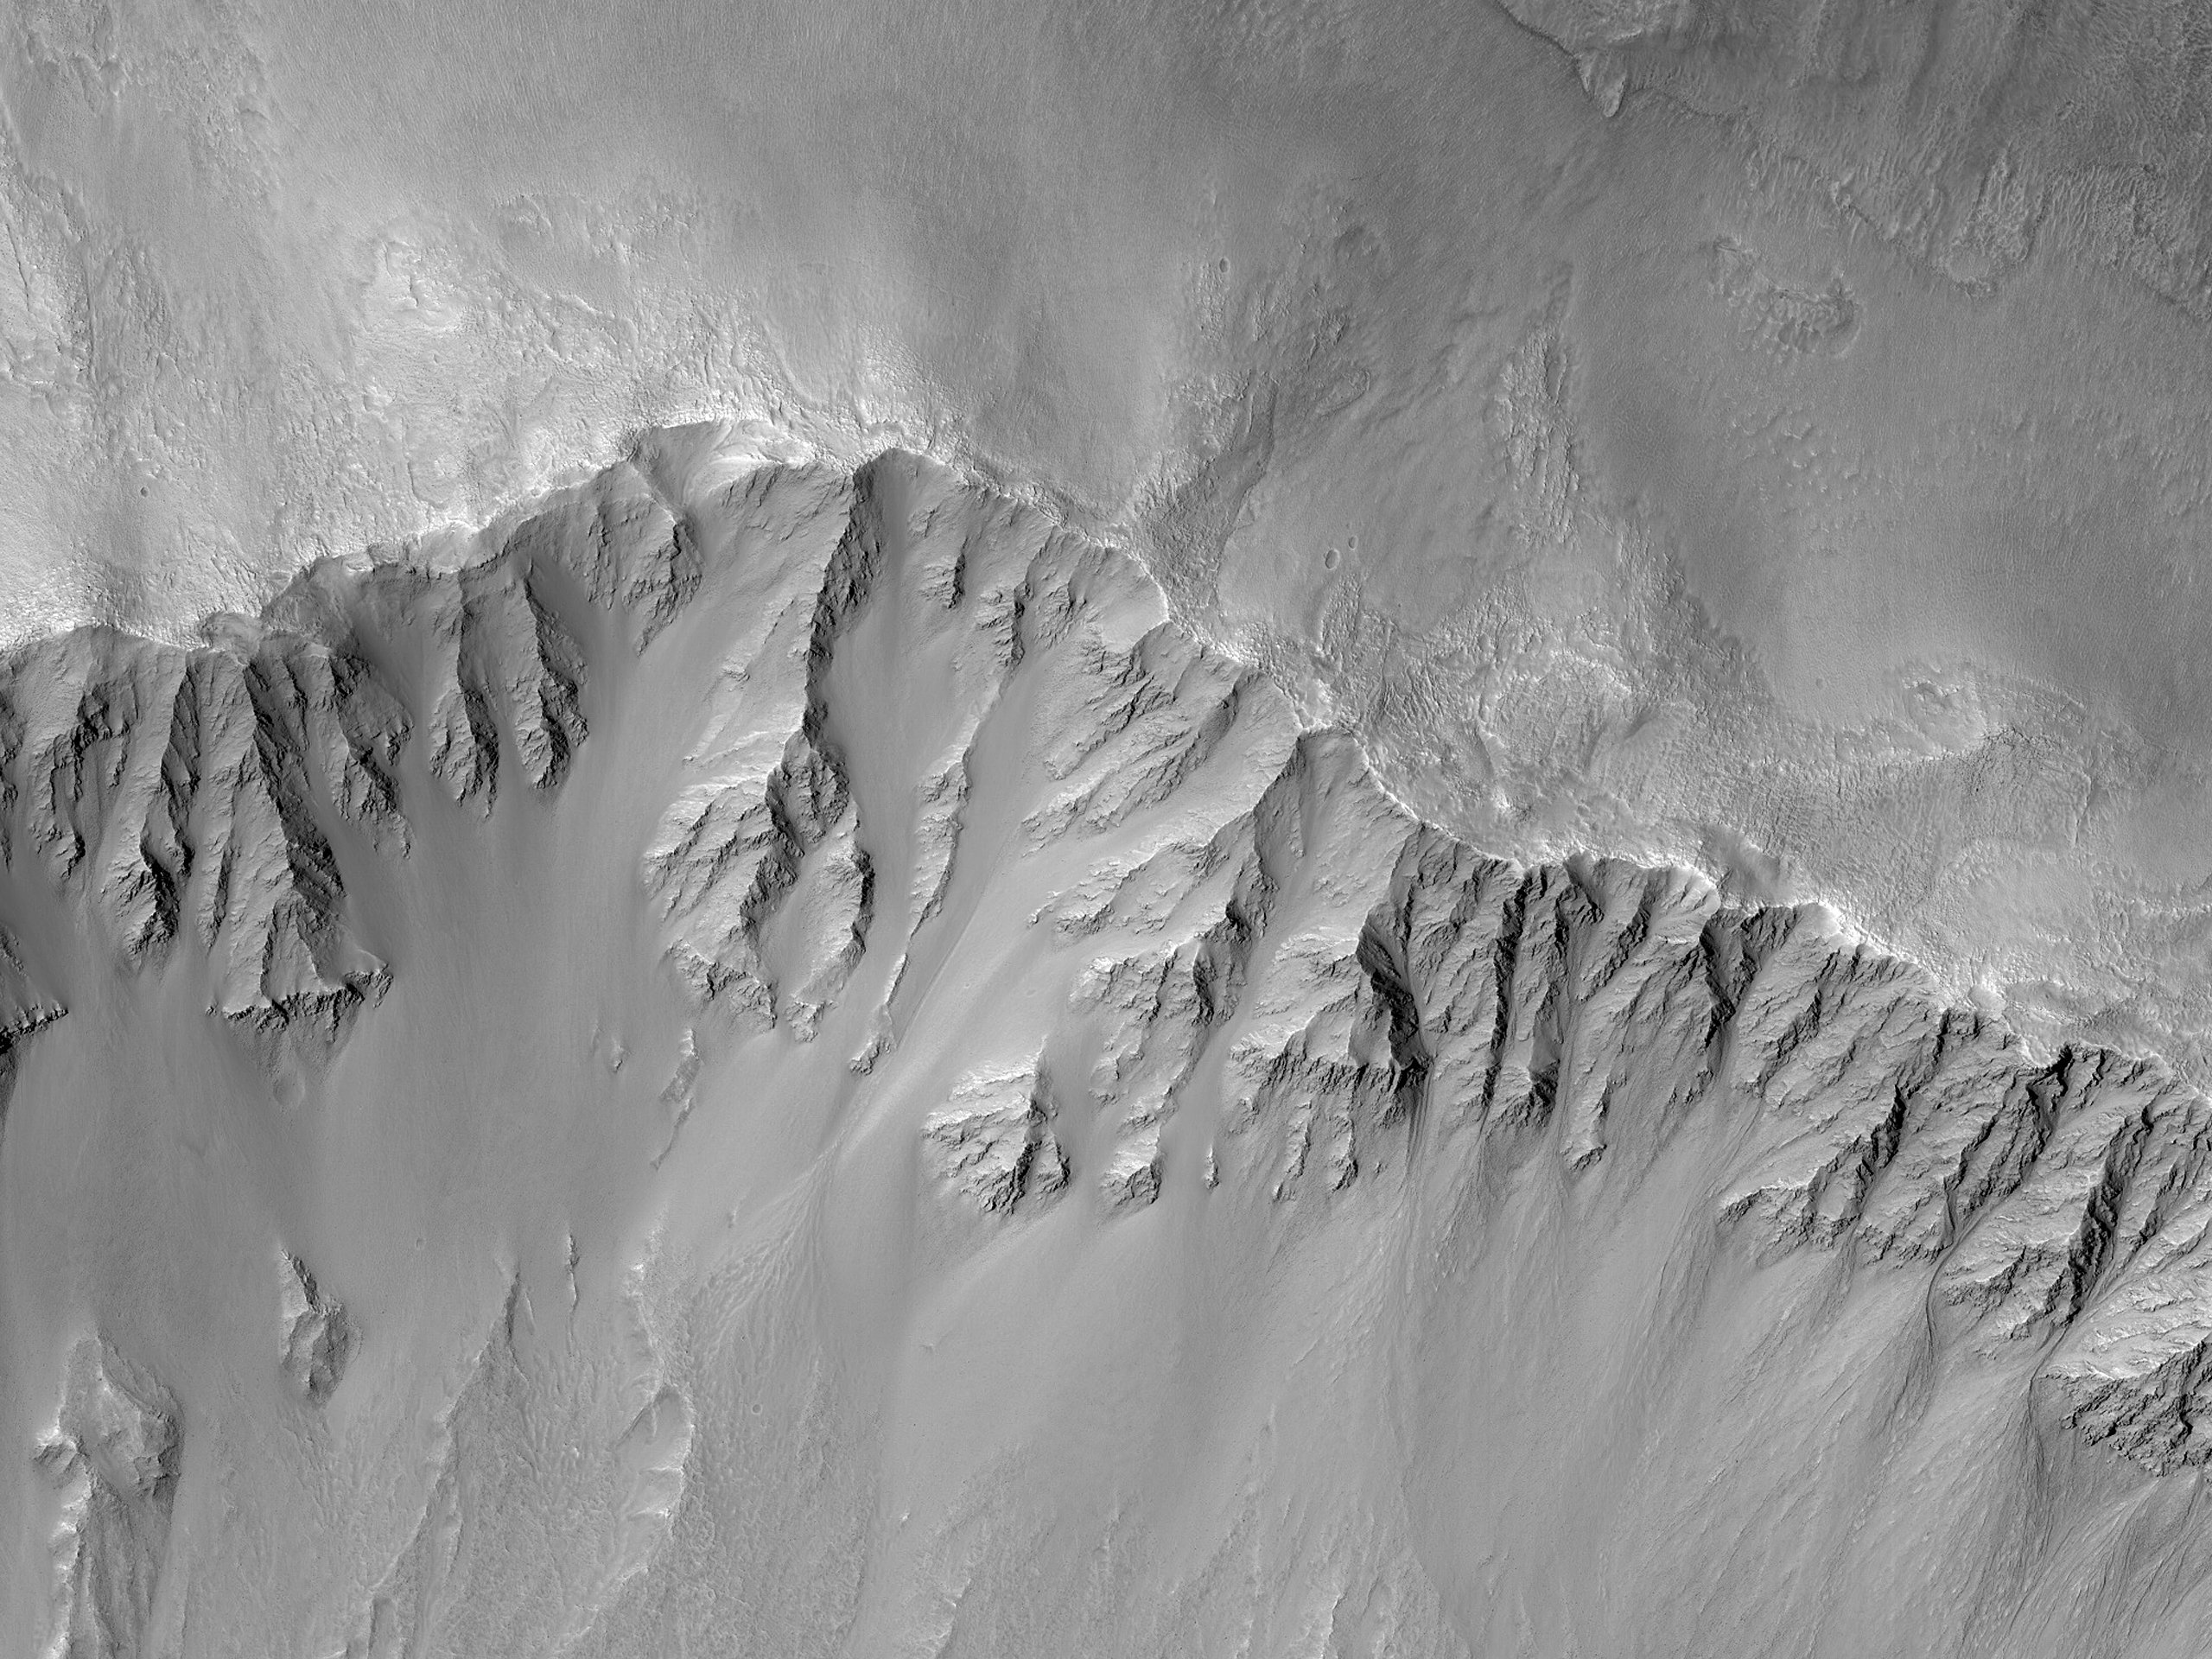 The Slope of Arandas Crater